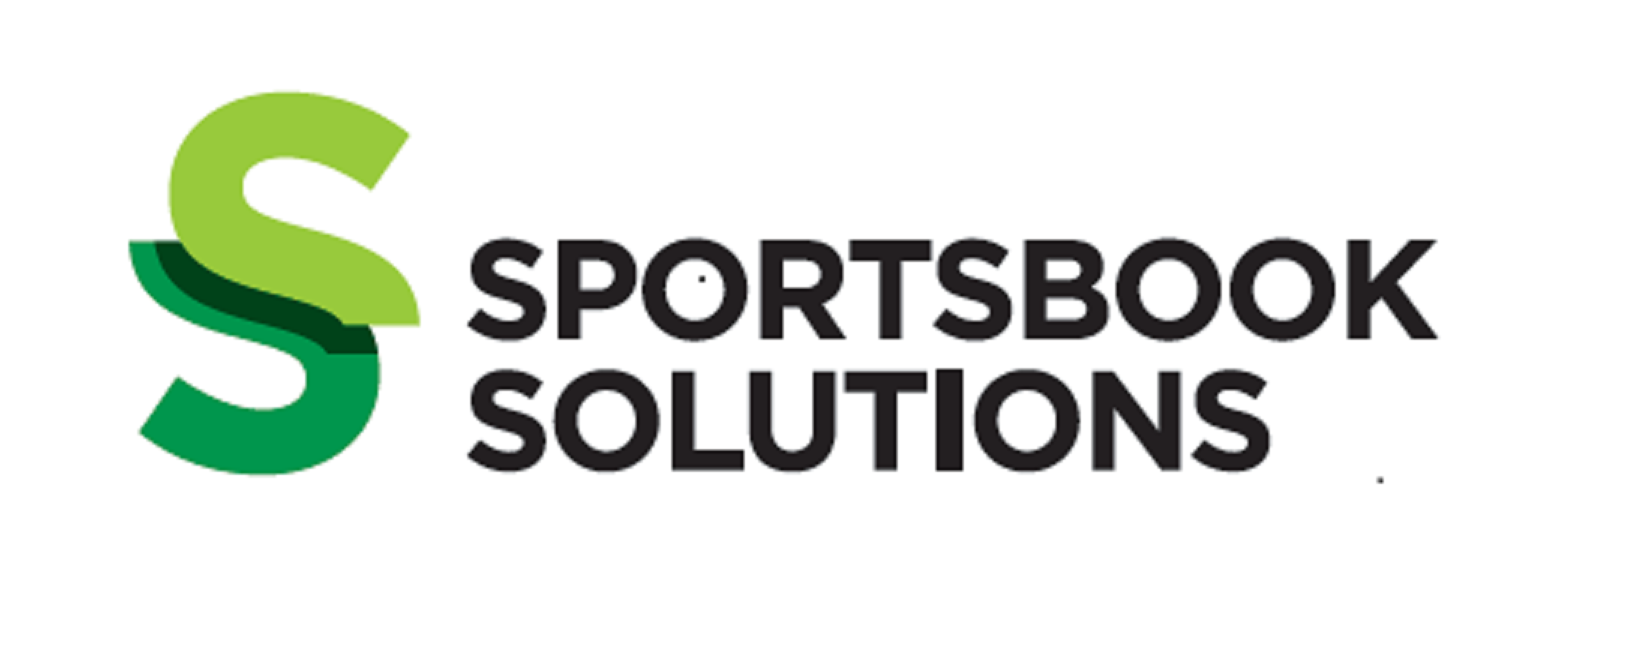 Sportsbook Solutions